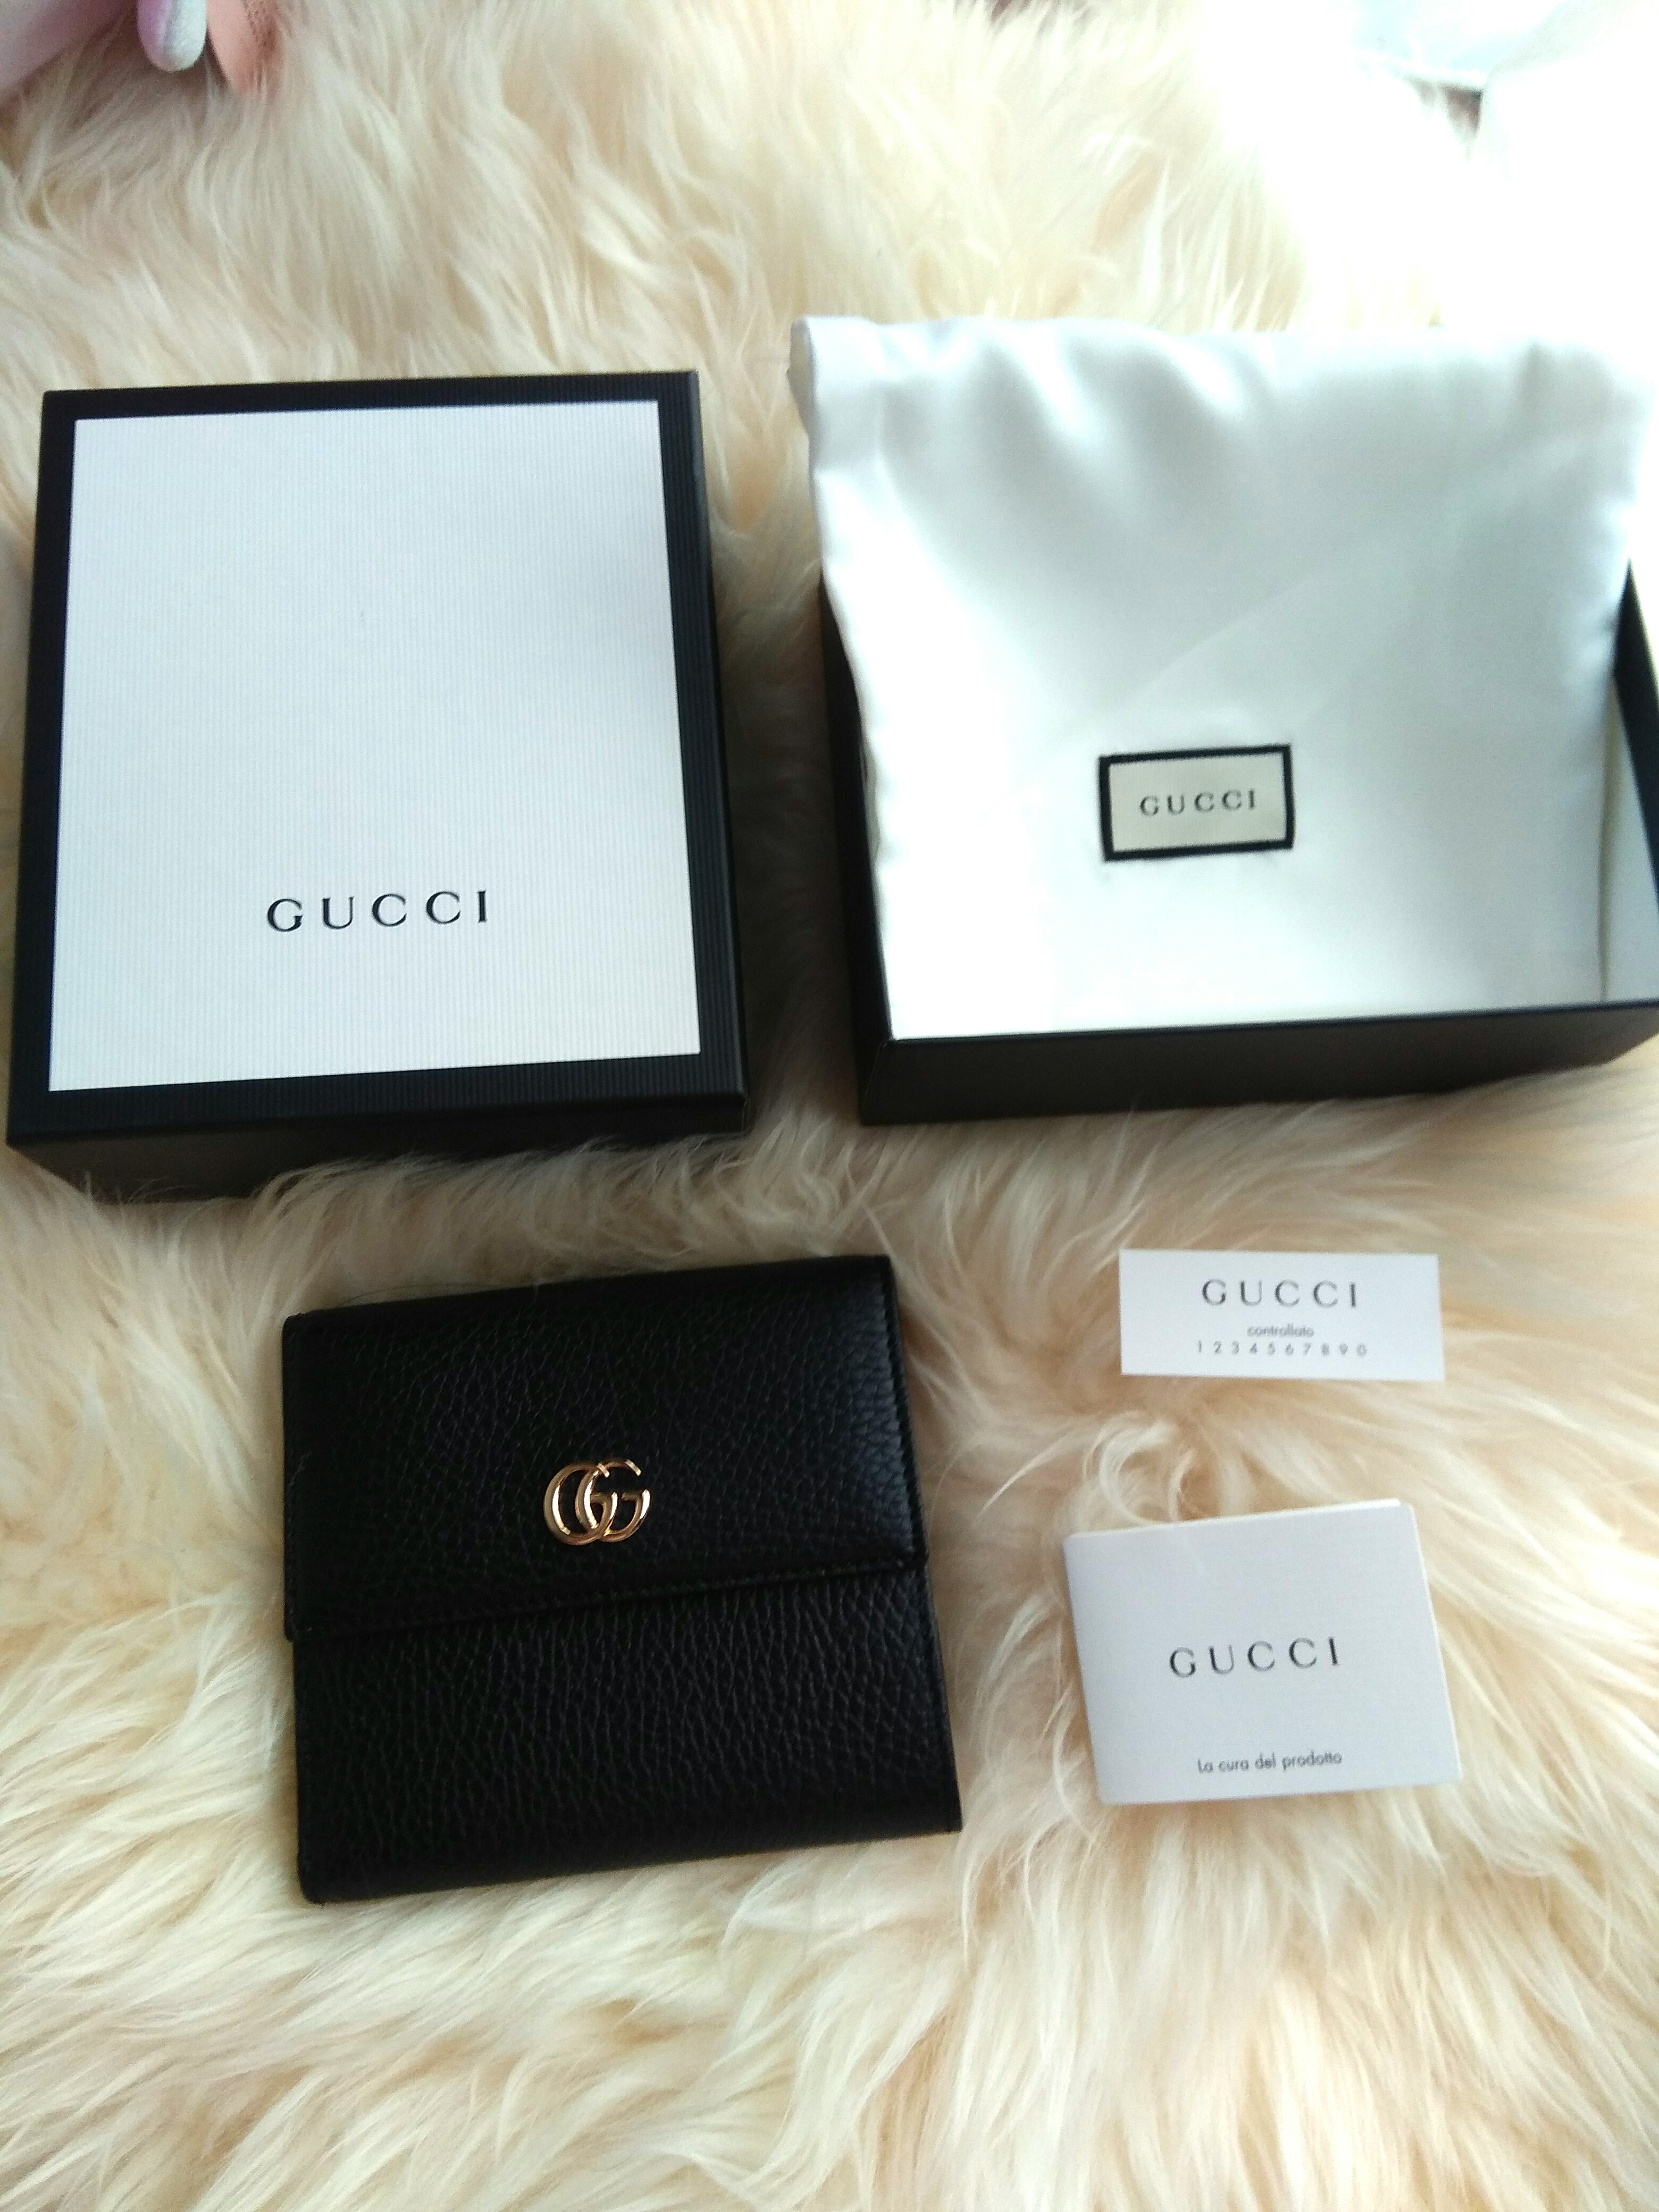 f3d1c652c613 Gucci leather french flap wallet, Luxury, Bags & Wallets, Wallets on  Carousell